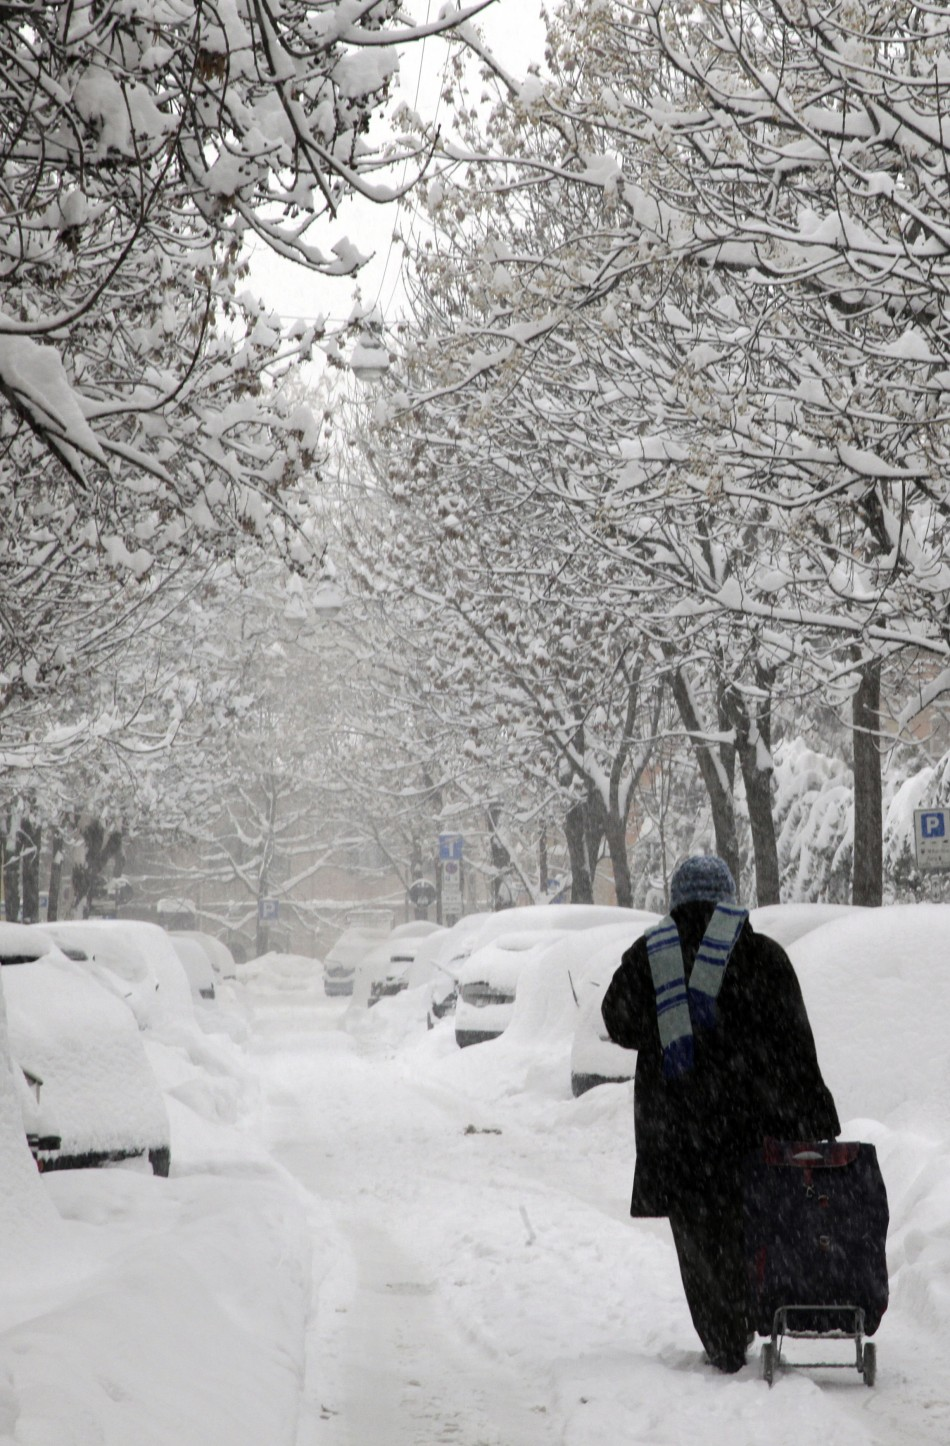 Siberia Winter Cold Plunges to Minus 55 - But UK Safe